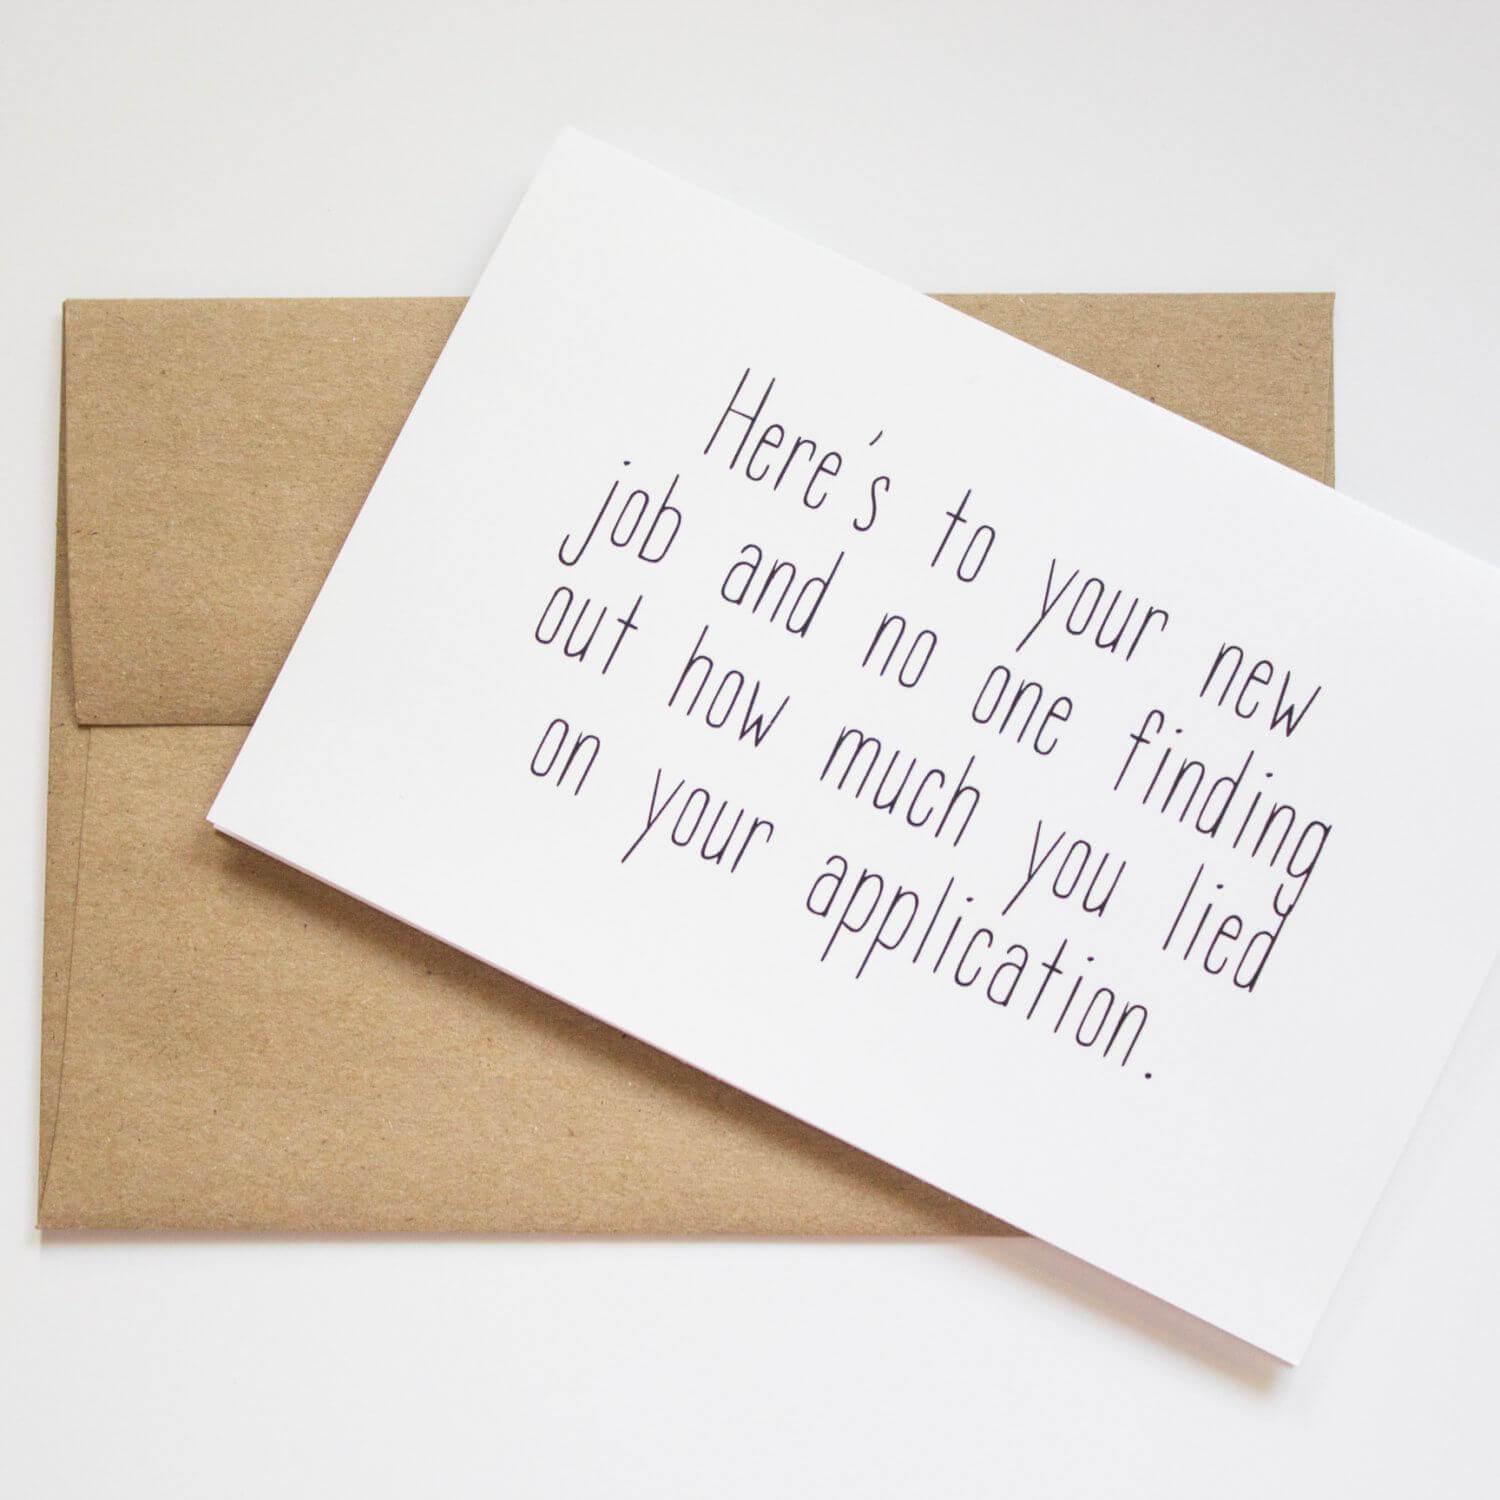 Funny New Job Card, Funny Leaving Cards, New Job Message intended for Sorry You Re Leaving Card Template